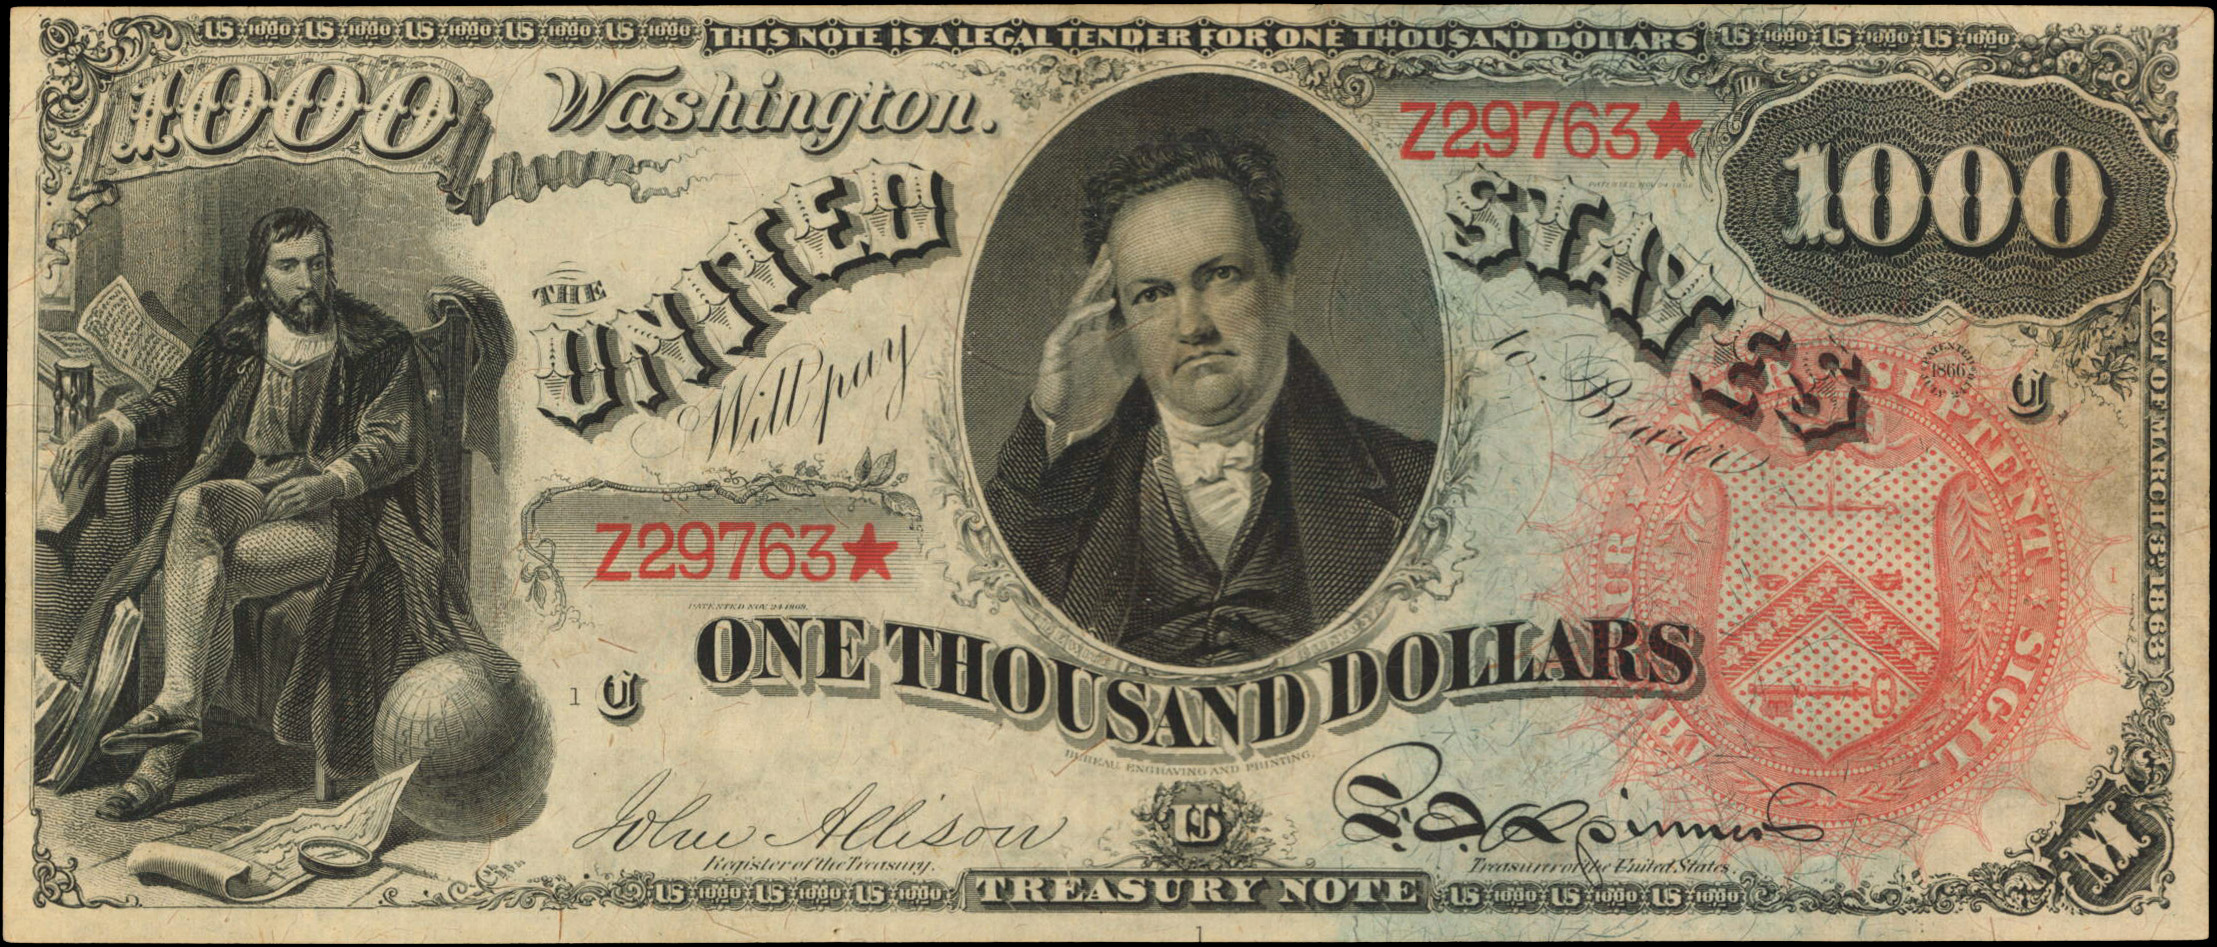 Rarest, most valuable US paper bills in existence set for multimillion dollar auction